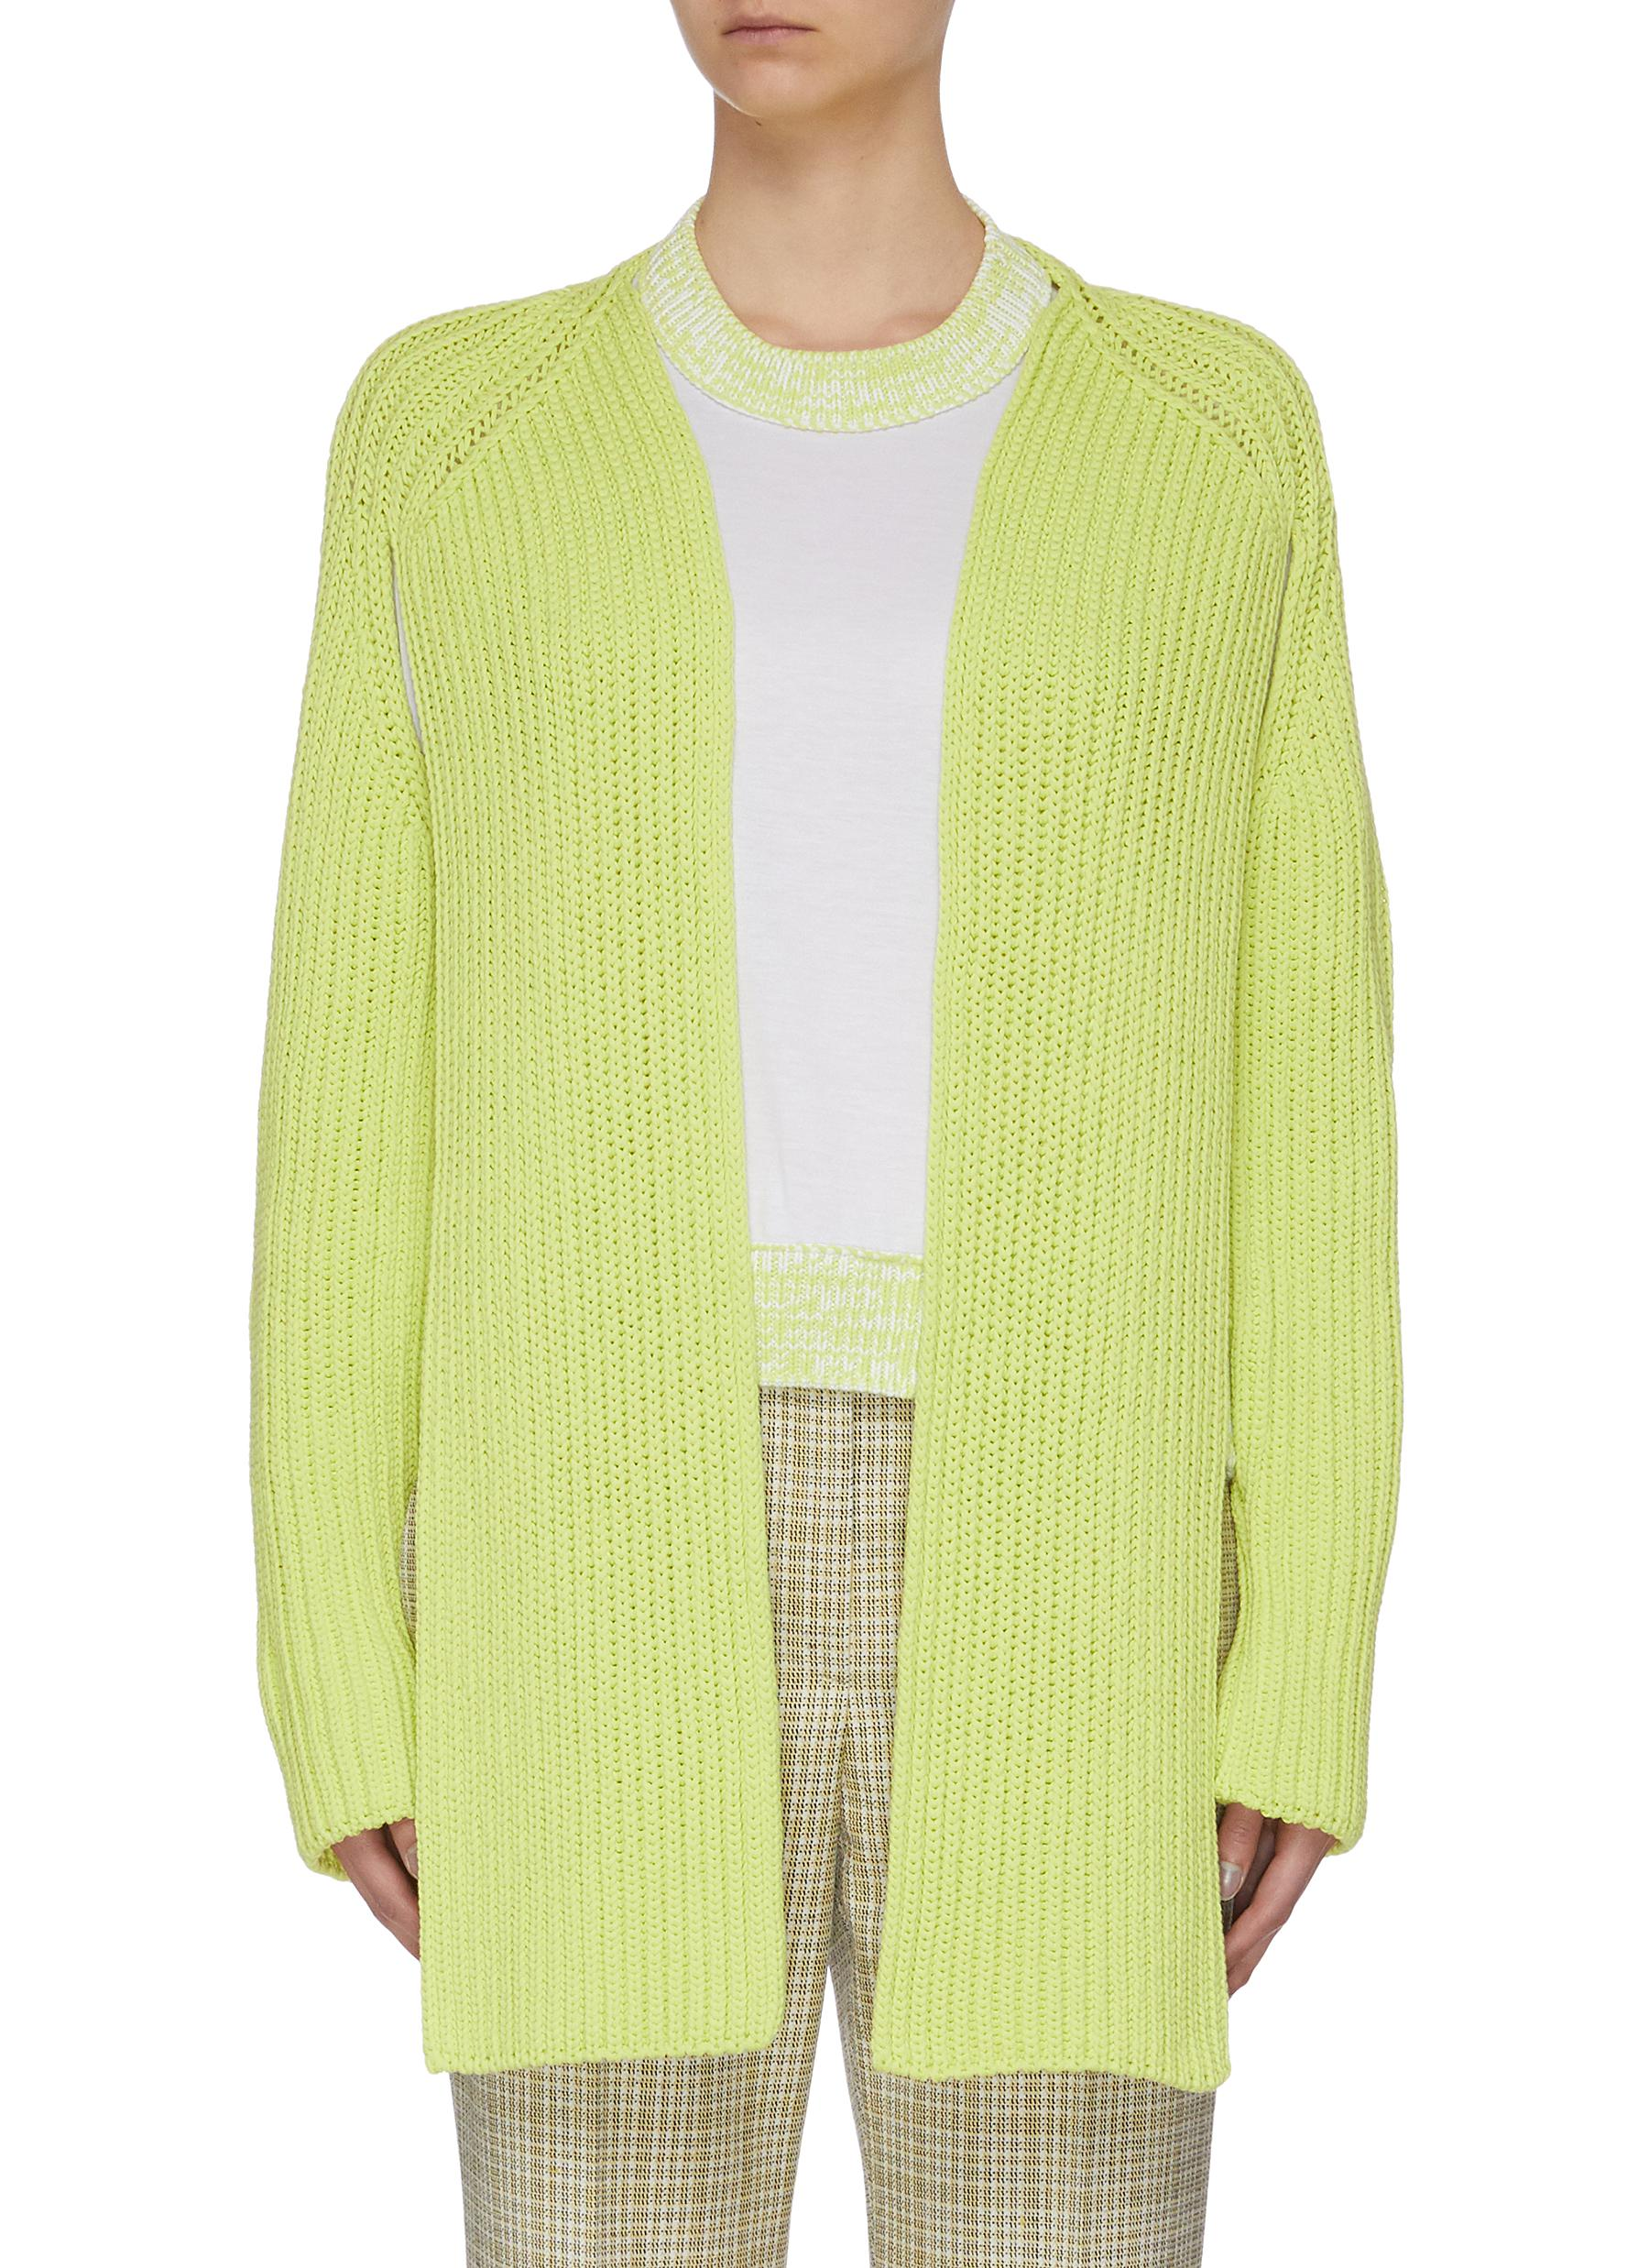 Buy Mrz Knitwear 'Coprispalle Lungo' open back cardigan